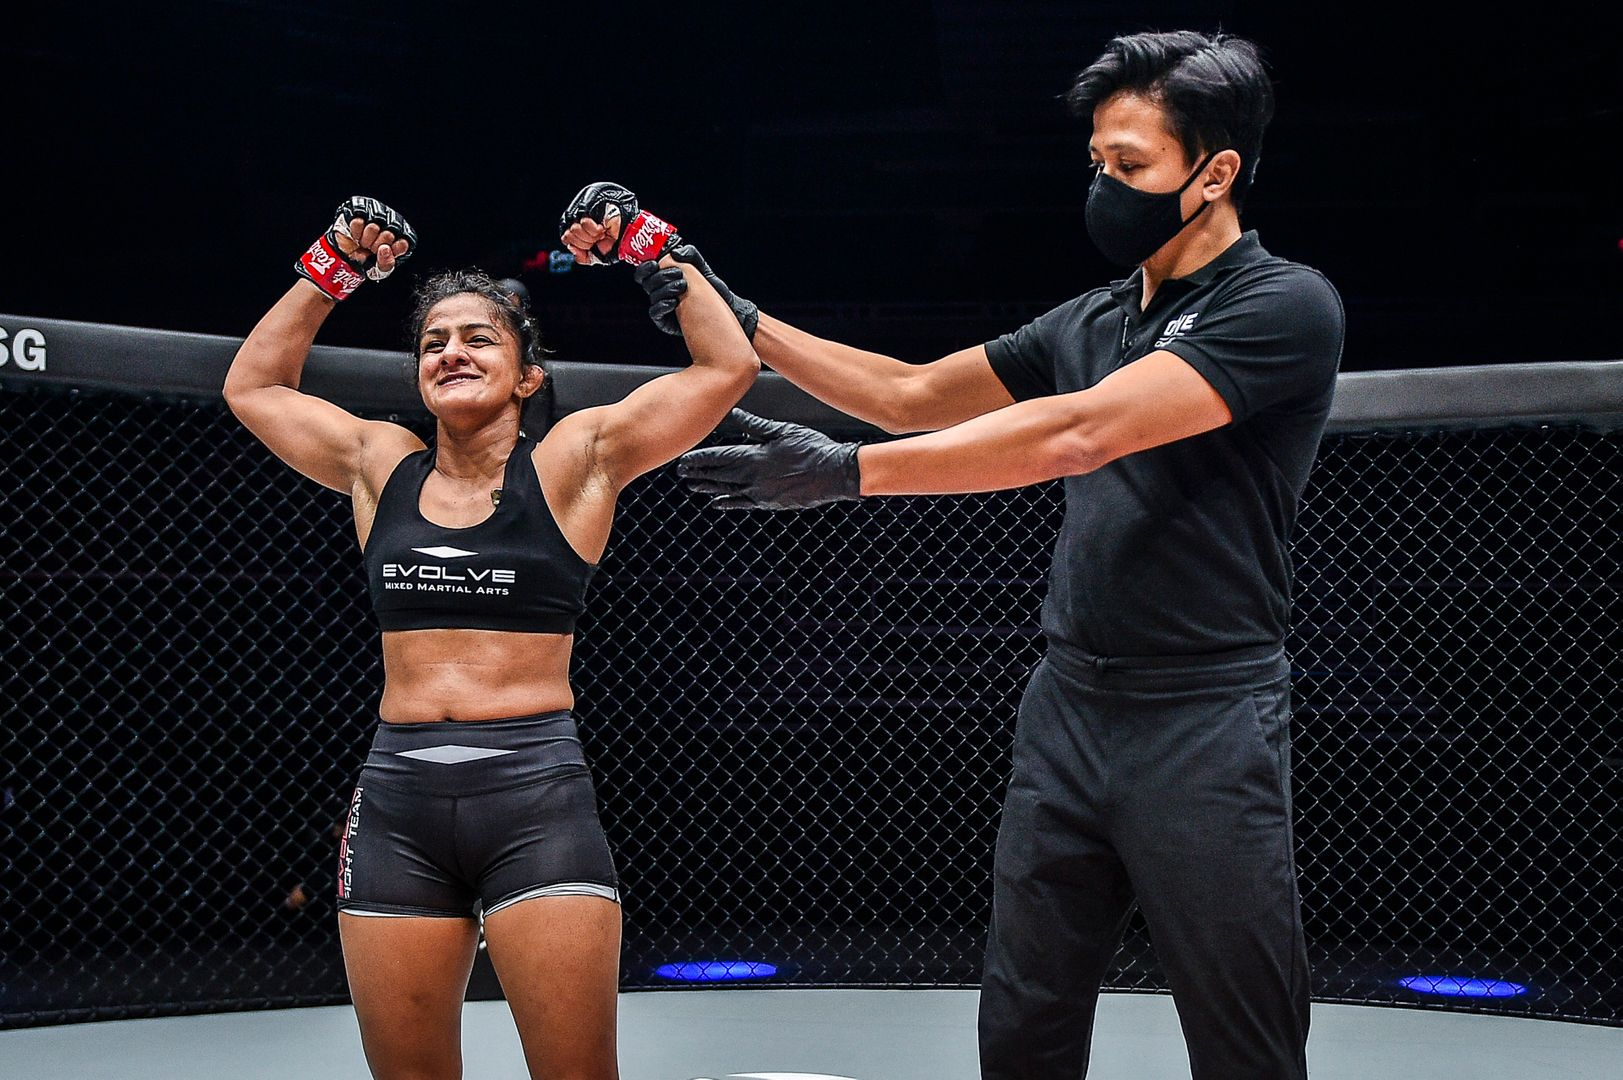 Ritu Phogat fights Nou Srey Pov in a mixed martial arts battle at ONE: INSIDE THE MATRIX on Friday, 30 October